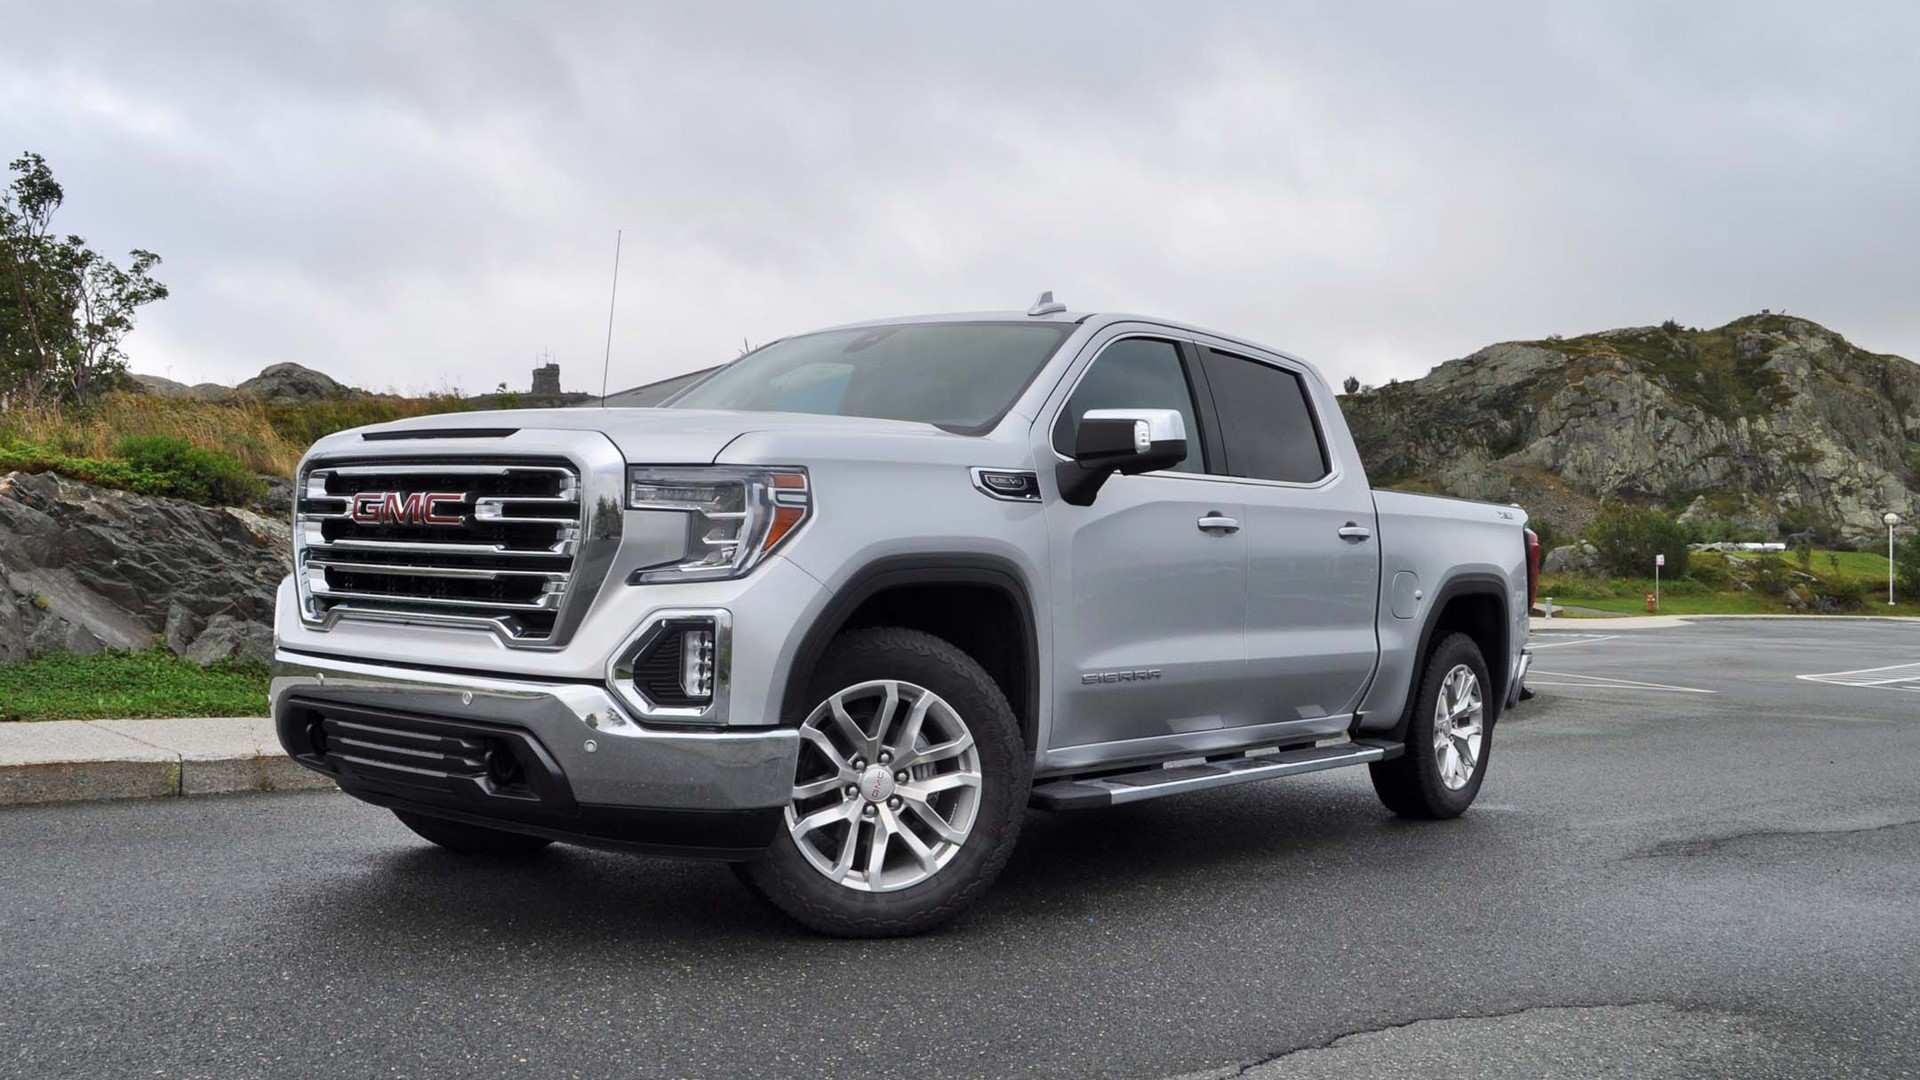 46 Concept of New 2019 Gmc Sierra Vs Silverado Review Specs And Release Date Speed Test by New 2019 Gmc Sierra Vs Silverado Review Specs And Release Date